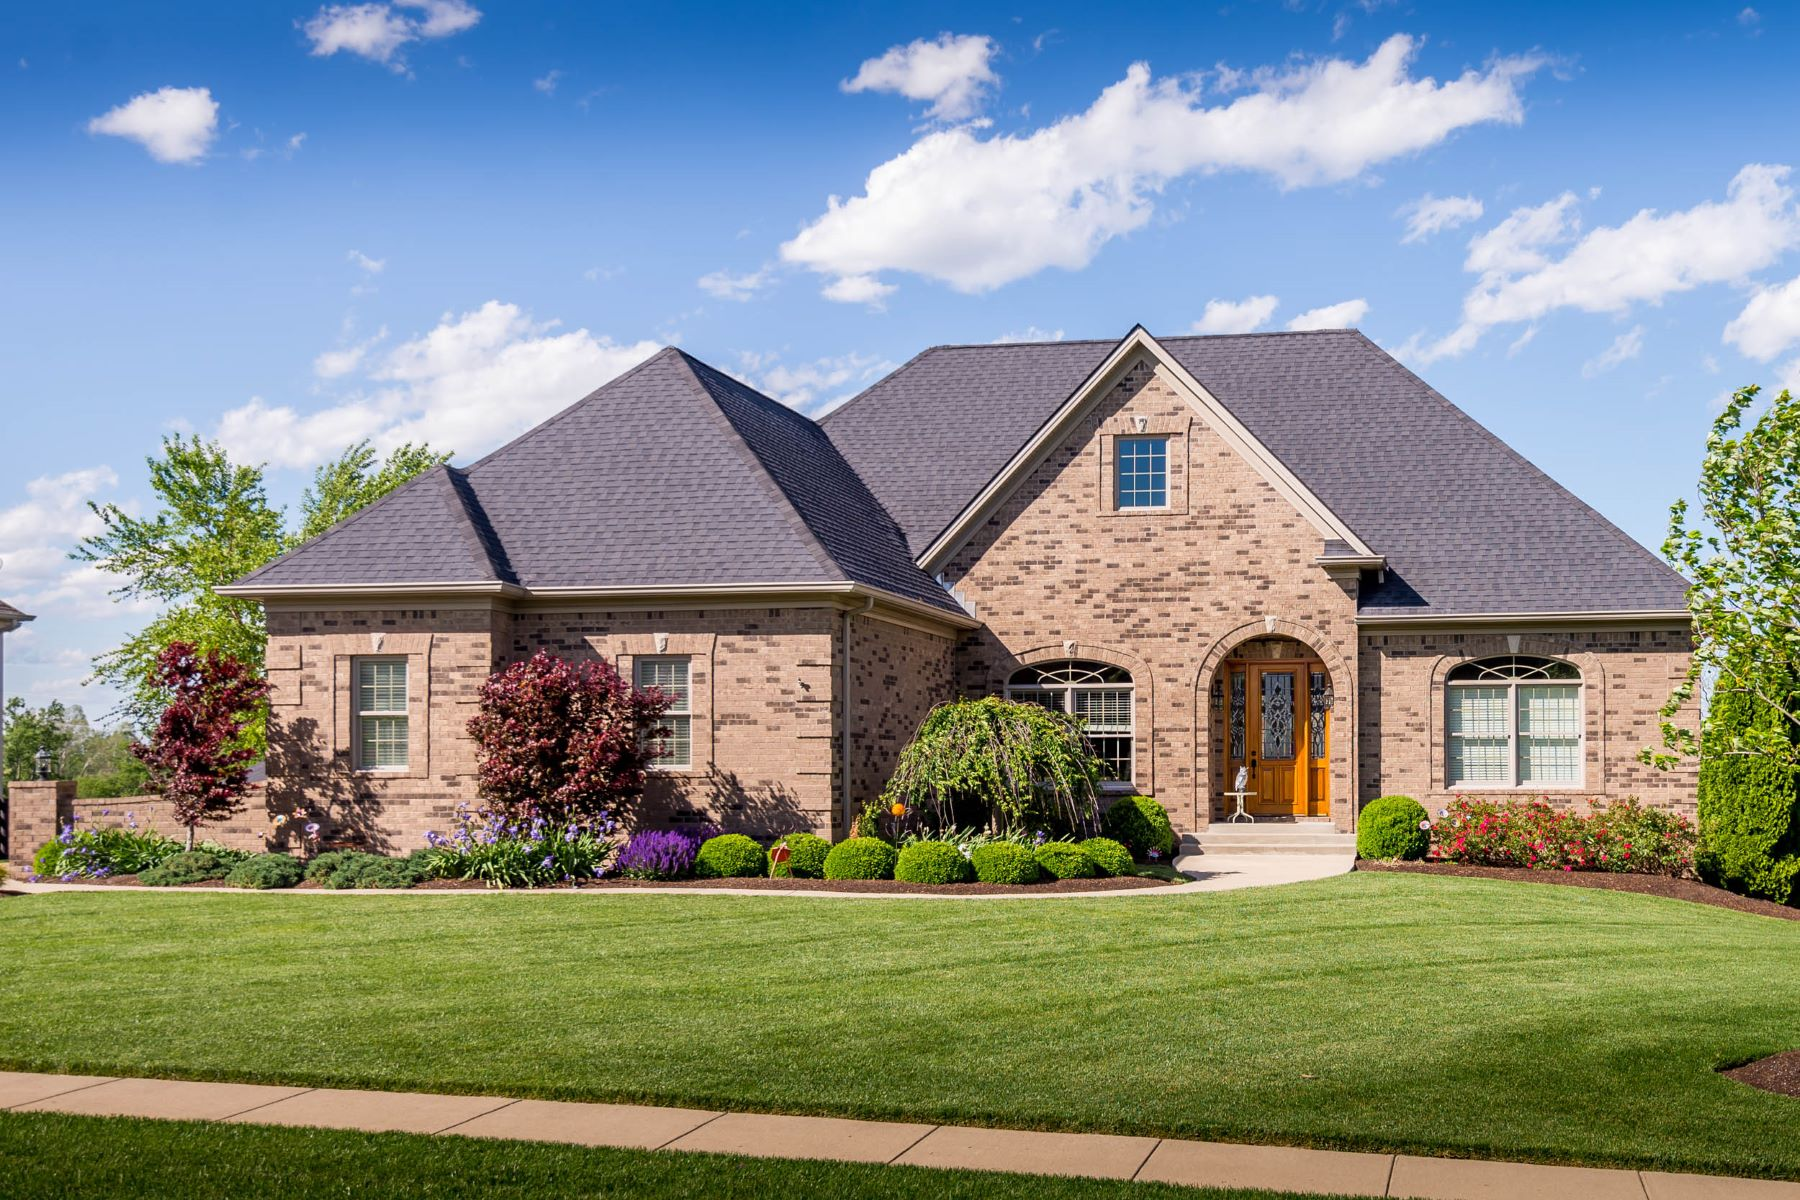 Casa Unifamiliar por un Venta en 106 Mill Rock Road Nicholasville, Kentucky 40356 Estados Unidos